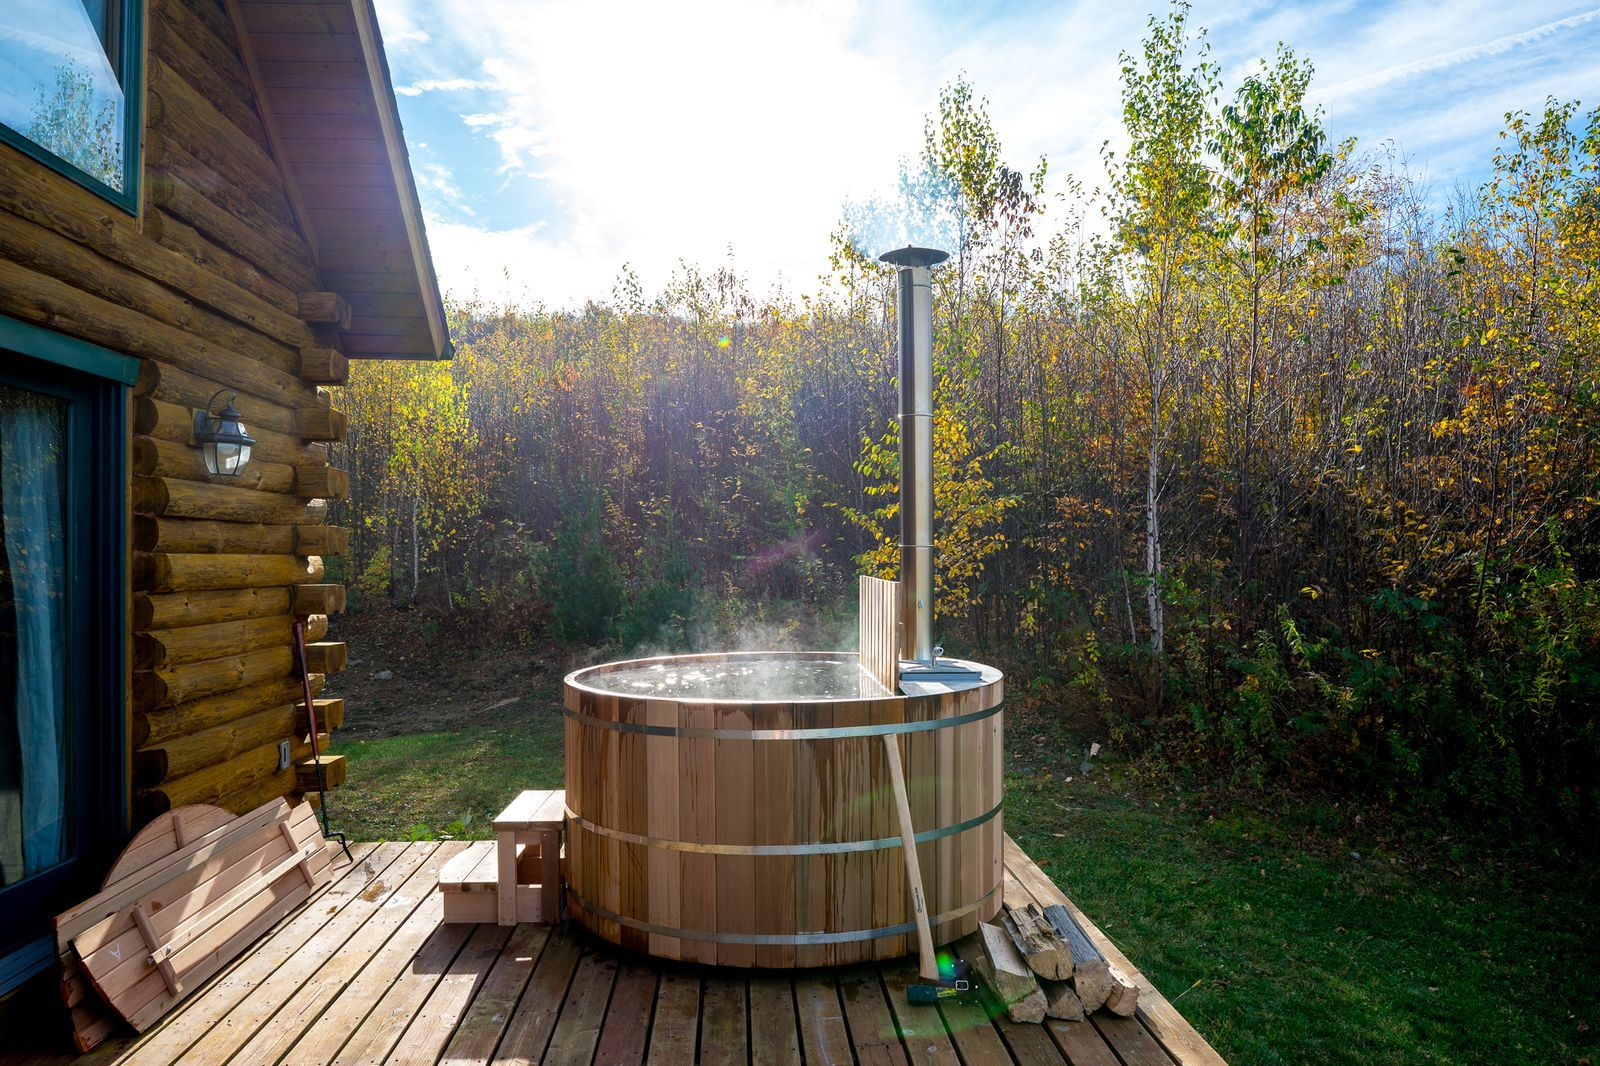 A woodfired hot tub is exactly what your backyard needs